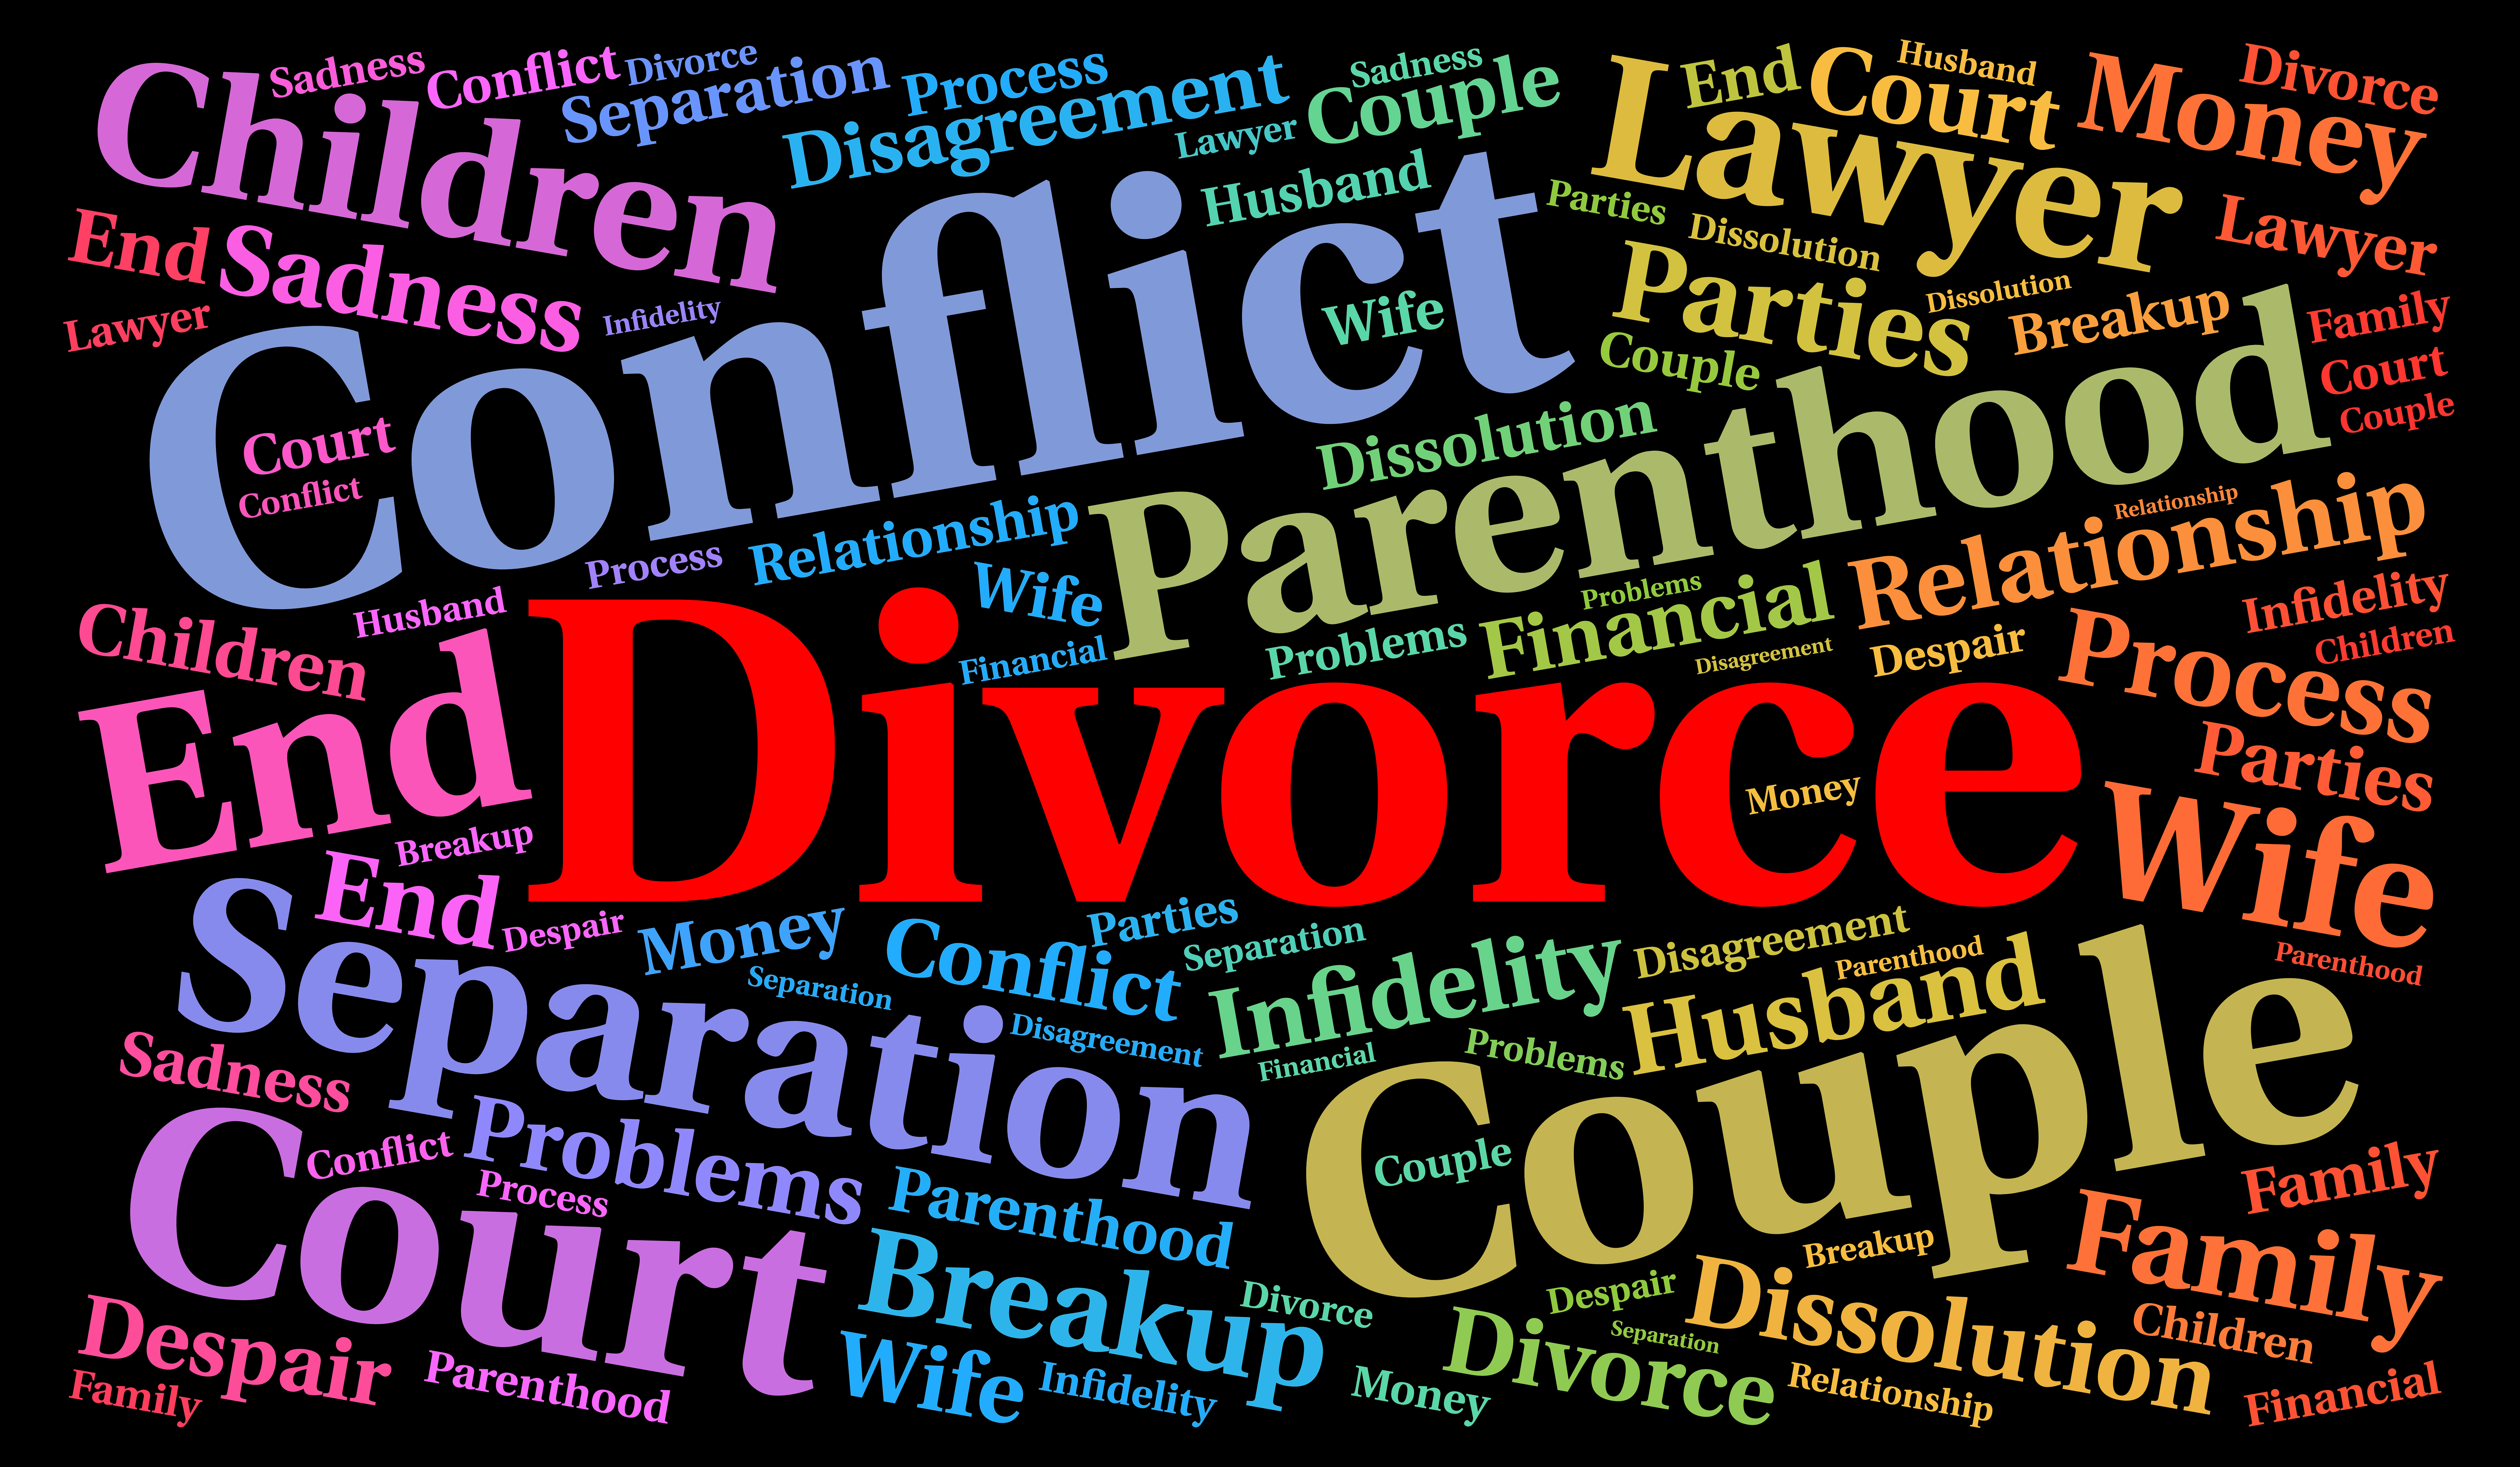 Divorcing in the Triangle